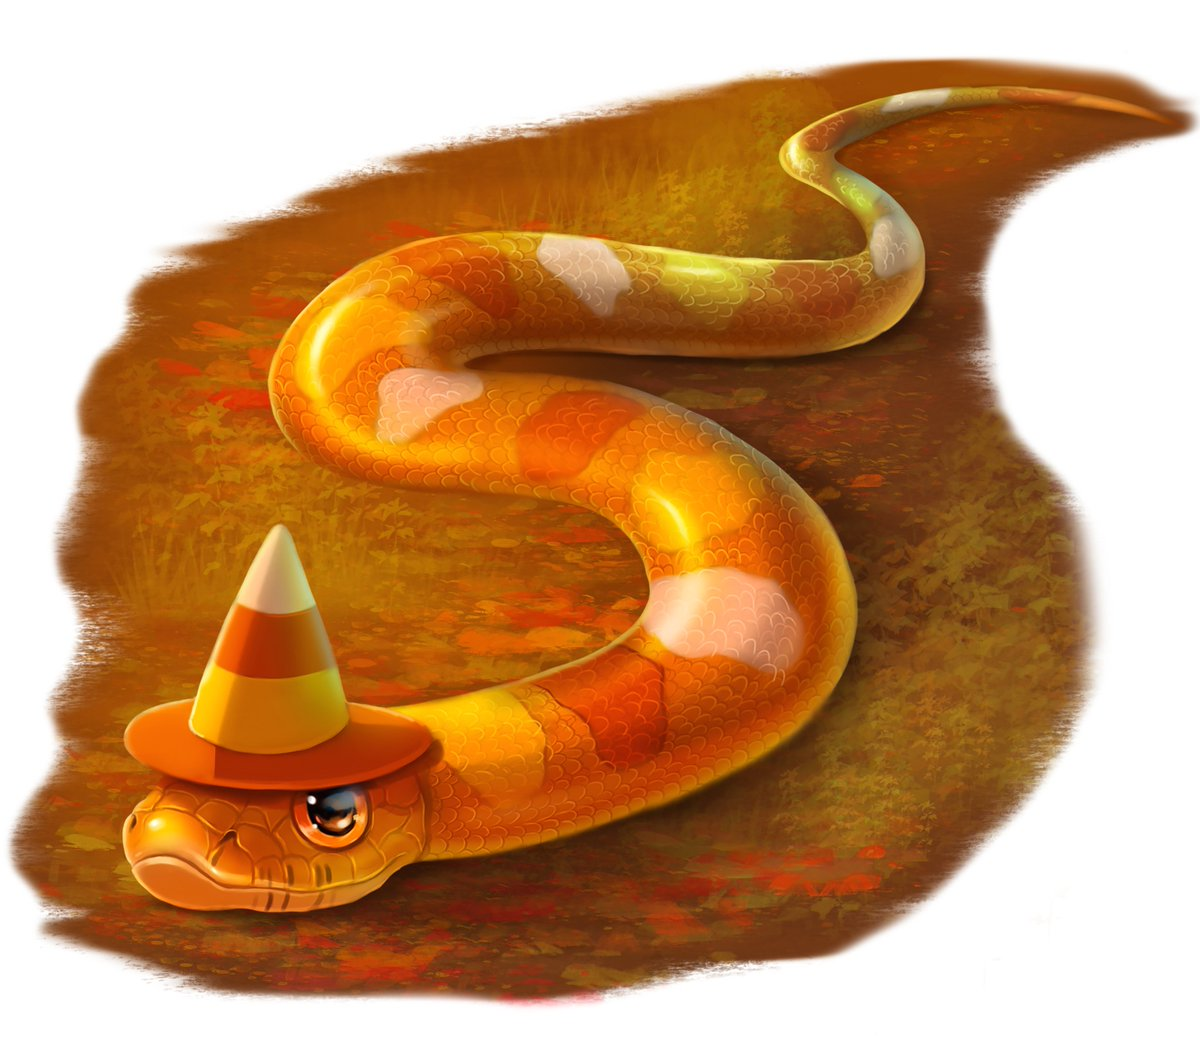 Artkitt Commissions Closed On Twitter Candy Corn Snake You Can Buy This Sugary Friend Here Https T Co Hz51ib5erg Halloween Candycorn Snake Digitalart Art Cute October Autumn Haloween2018 Https T Co A9ijkujlid,How To Get Rid Of Flies In Potted Plants